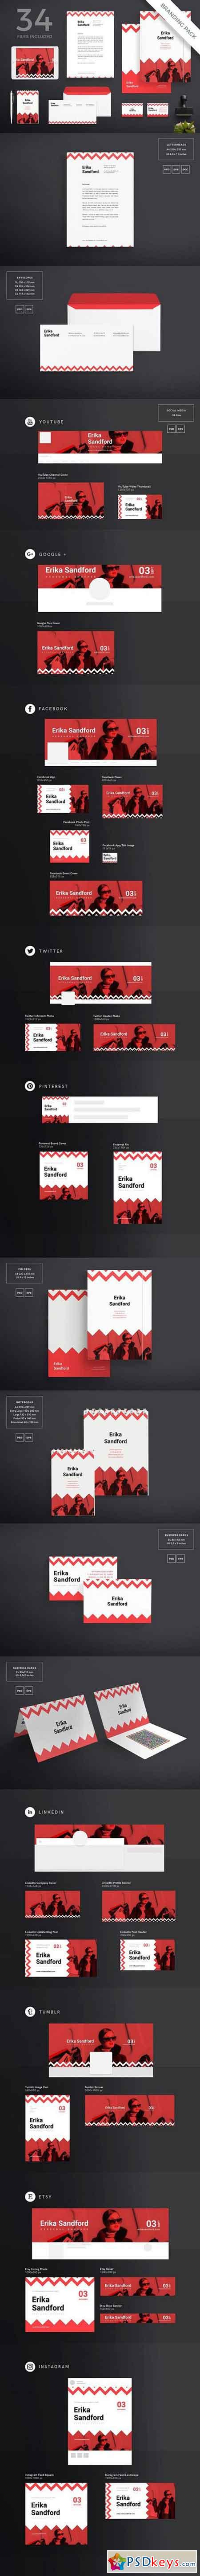 Branding Pack Fashion & Style 1485719